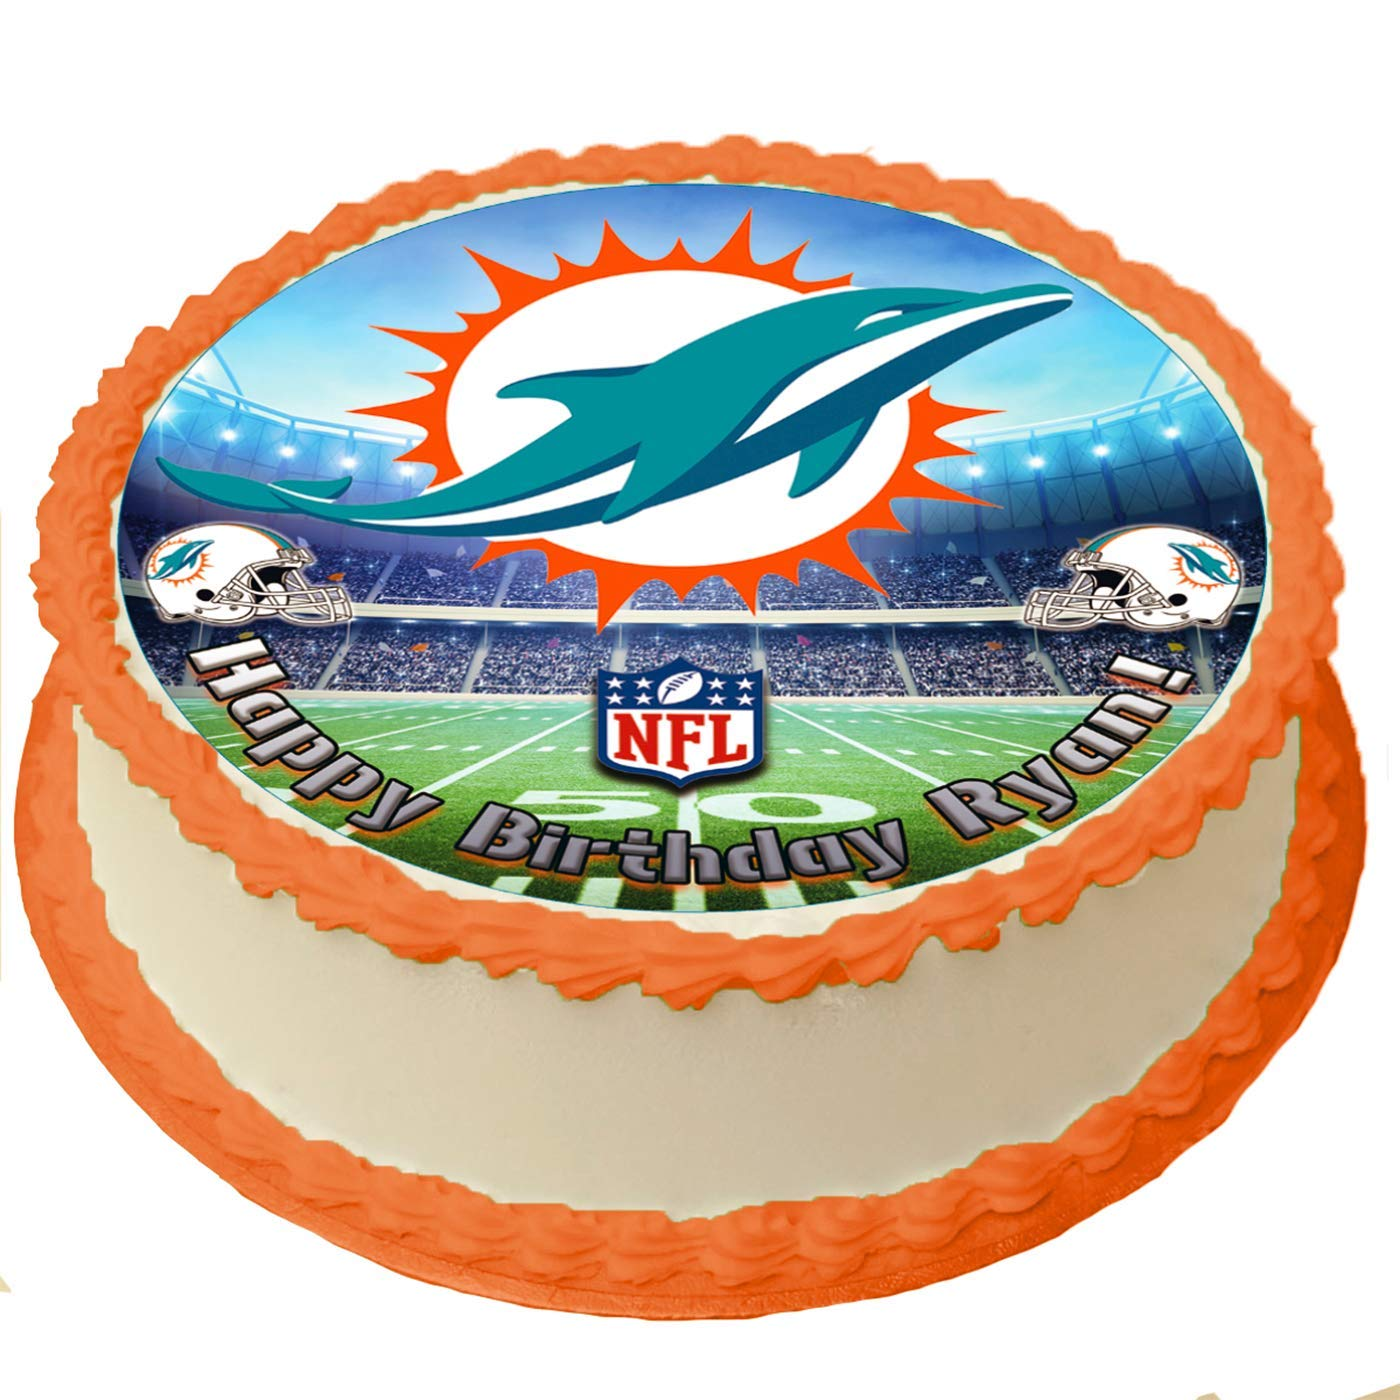 Awe Inspiring Miami Dolphins Nfl Personalized Cake Topper Icing Sugar Paper 8 Personalised Birthday Cards Paralily Jamesorg